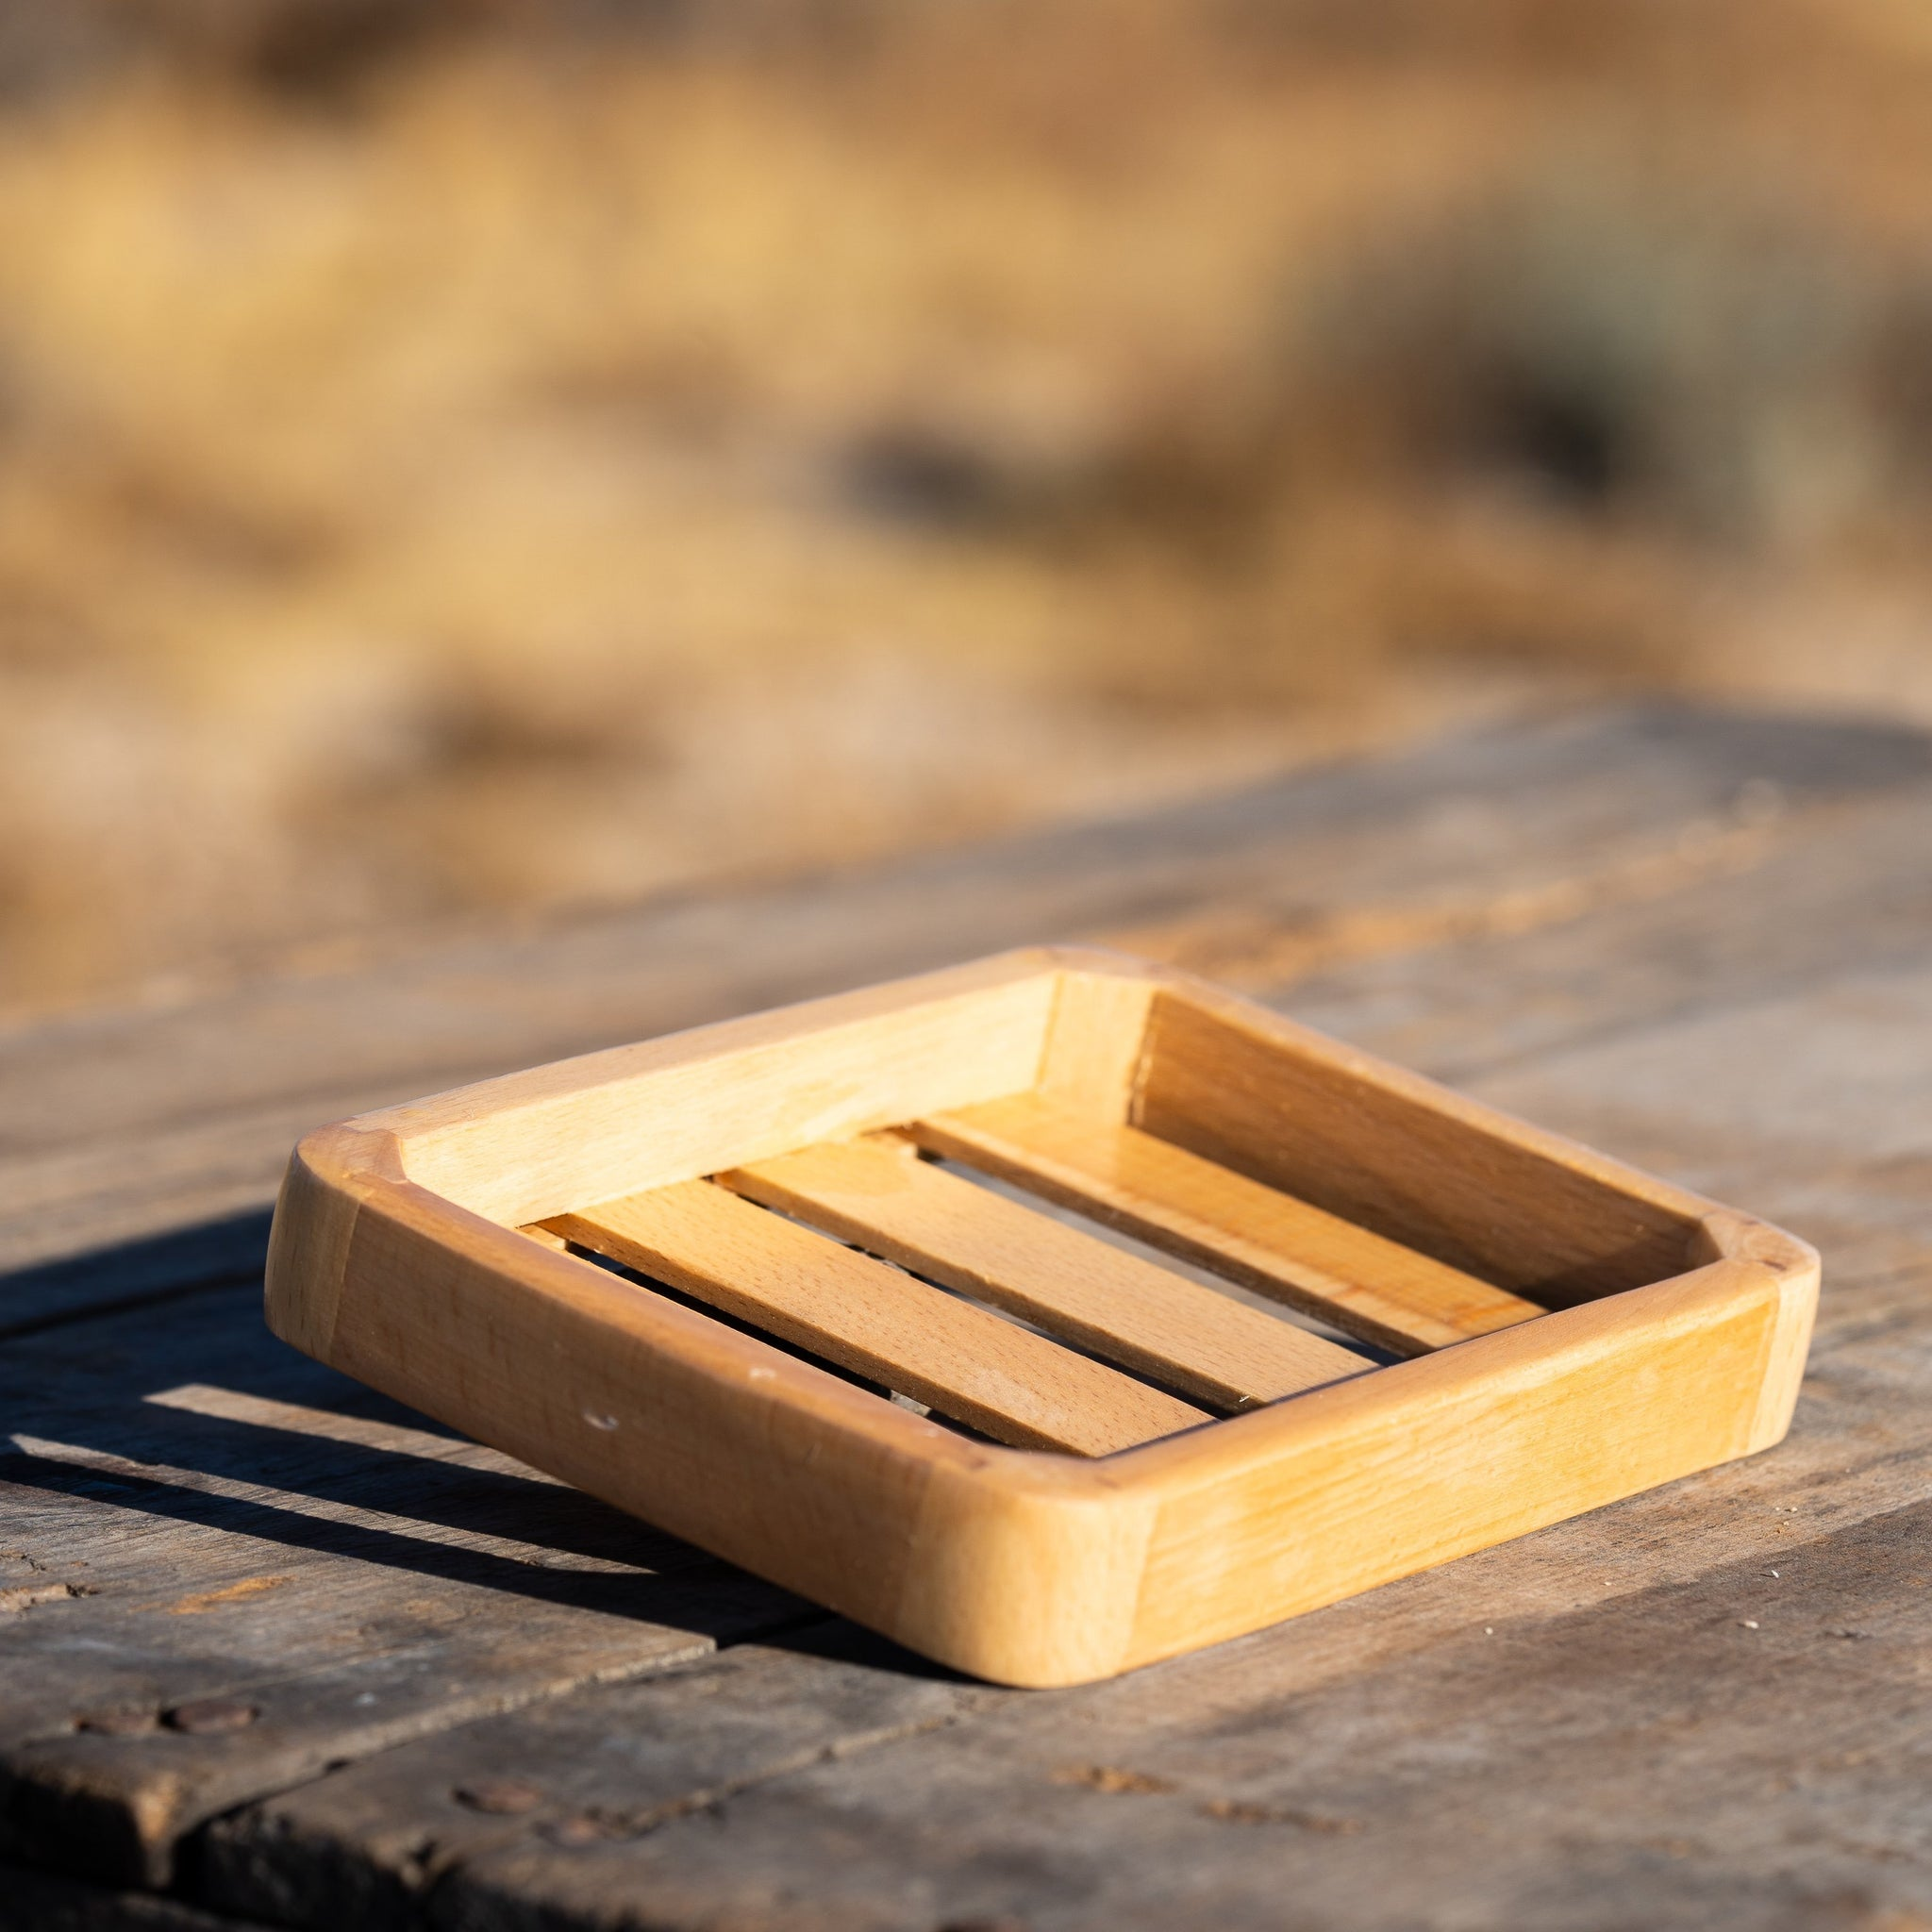 Wood Soap Dish Other Stuff Perfect for Soap Longevity!